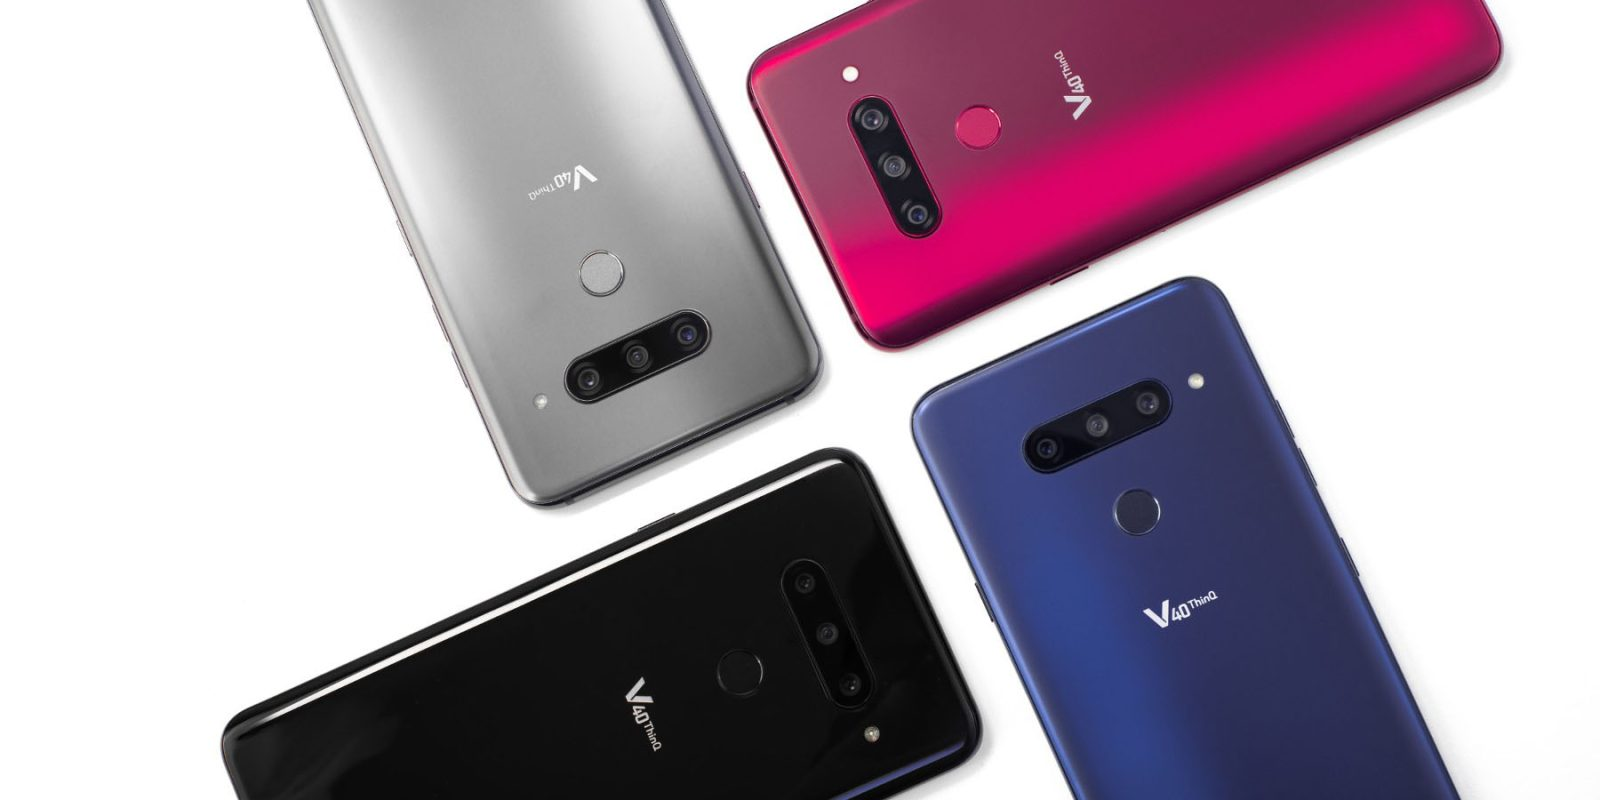 LG V40 ThinQ gets Android Pie in the US, Verizon only